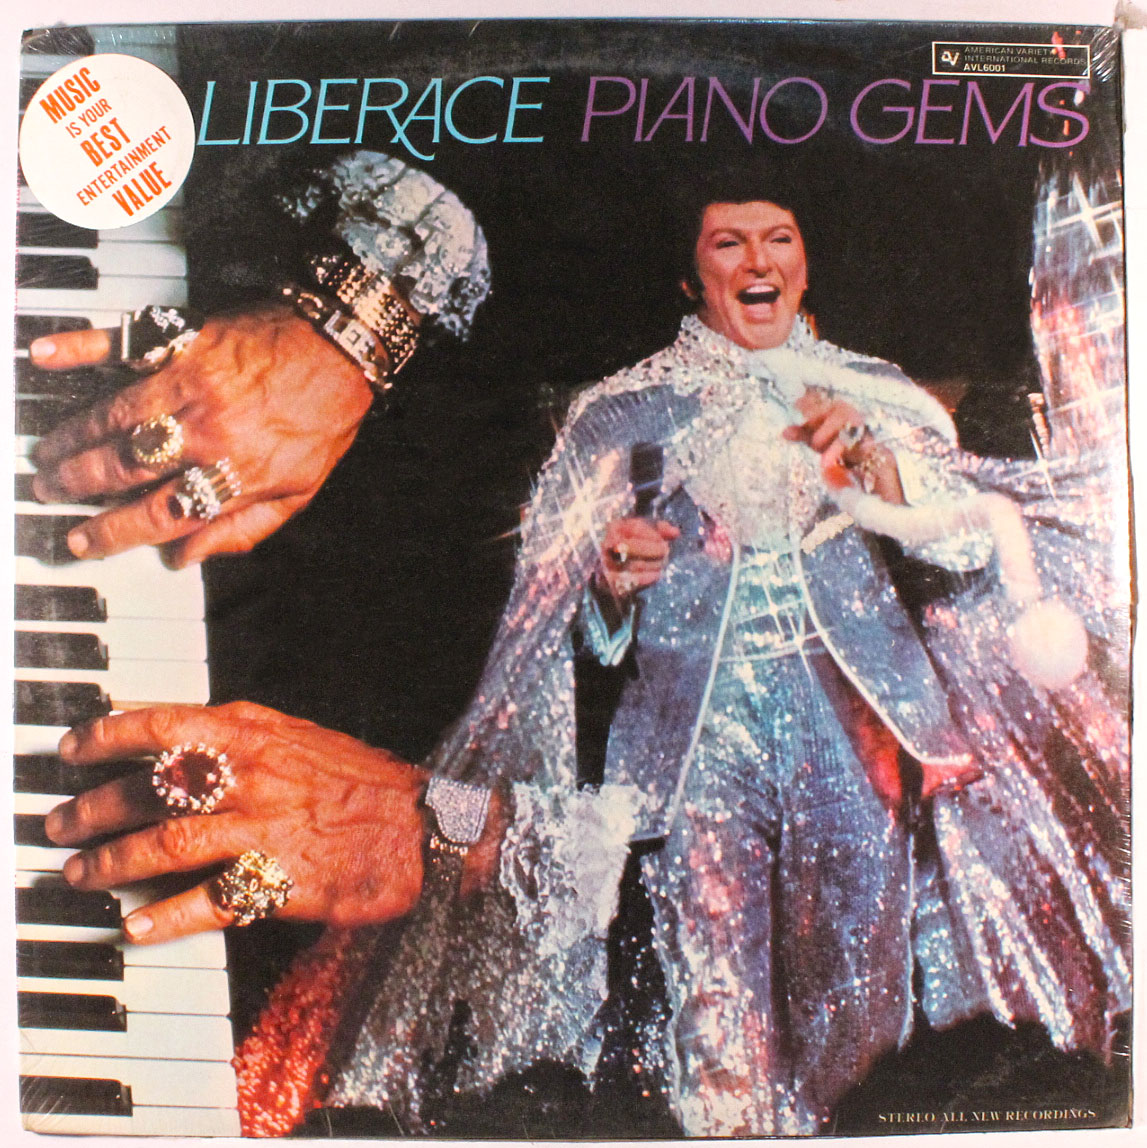 Liberace's Musical/Material Appeal - Oxford Handbooks